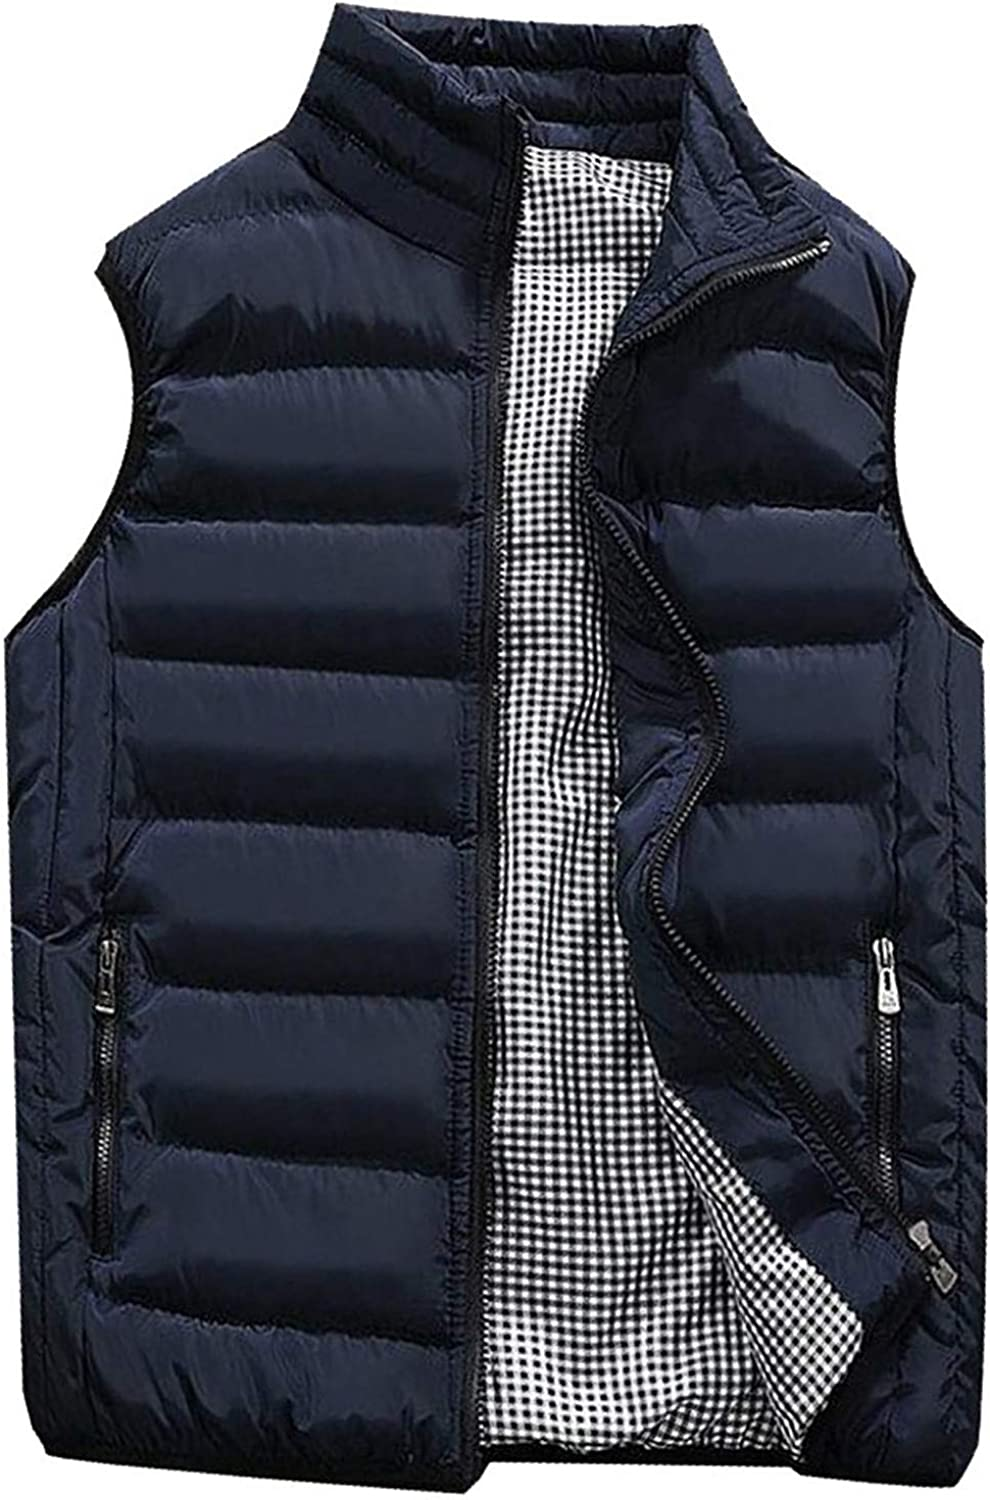 WUAI-Men Winter Warm Outdoor Padded Puffer Vest Thick Water-Resistant Puffer Jacket Sleeveless Cotton Padded Waistcoat